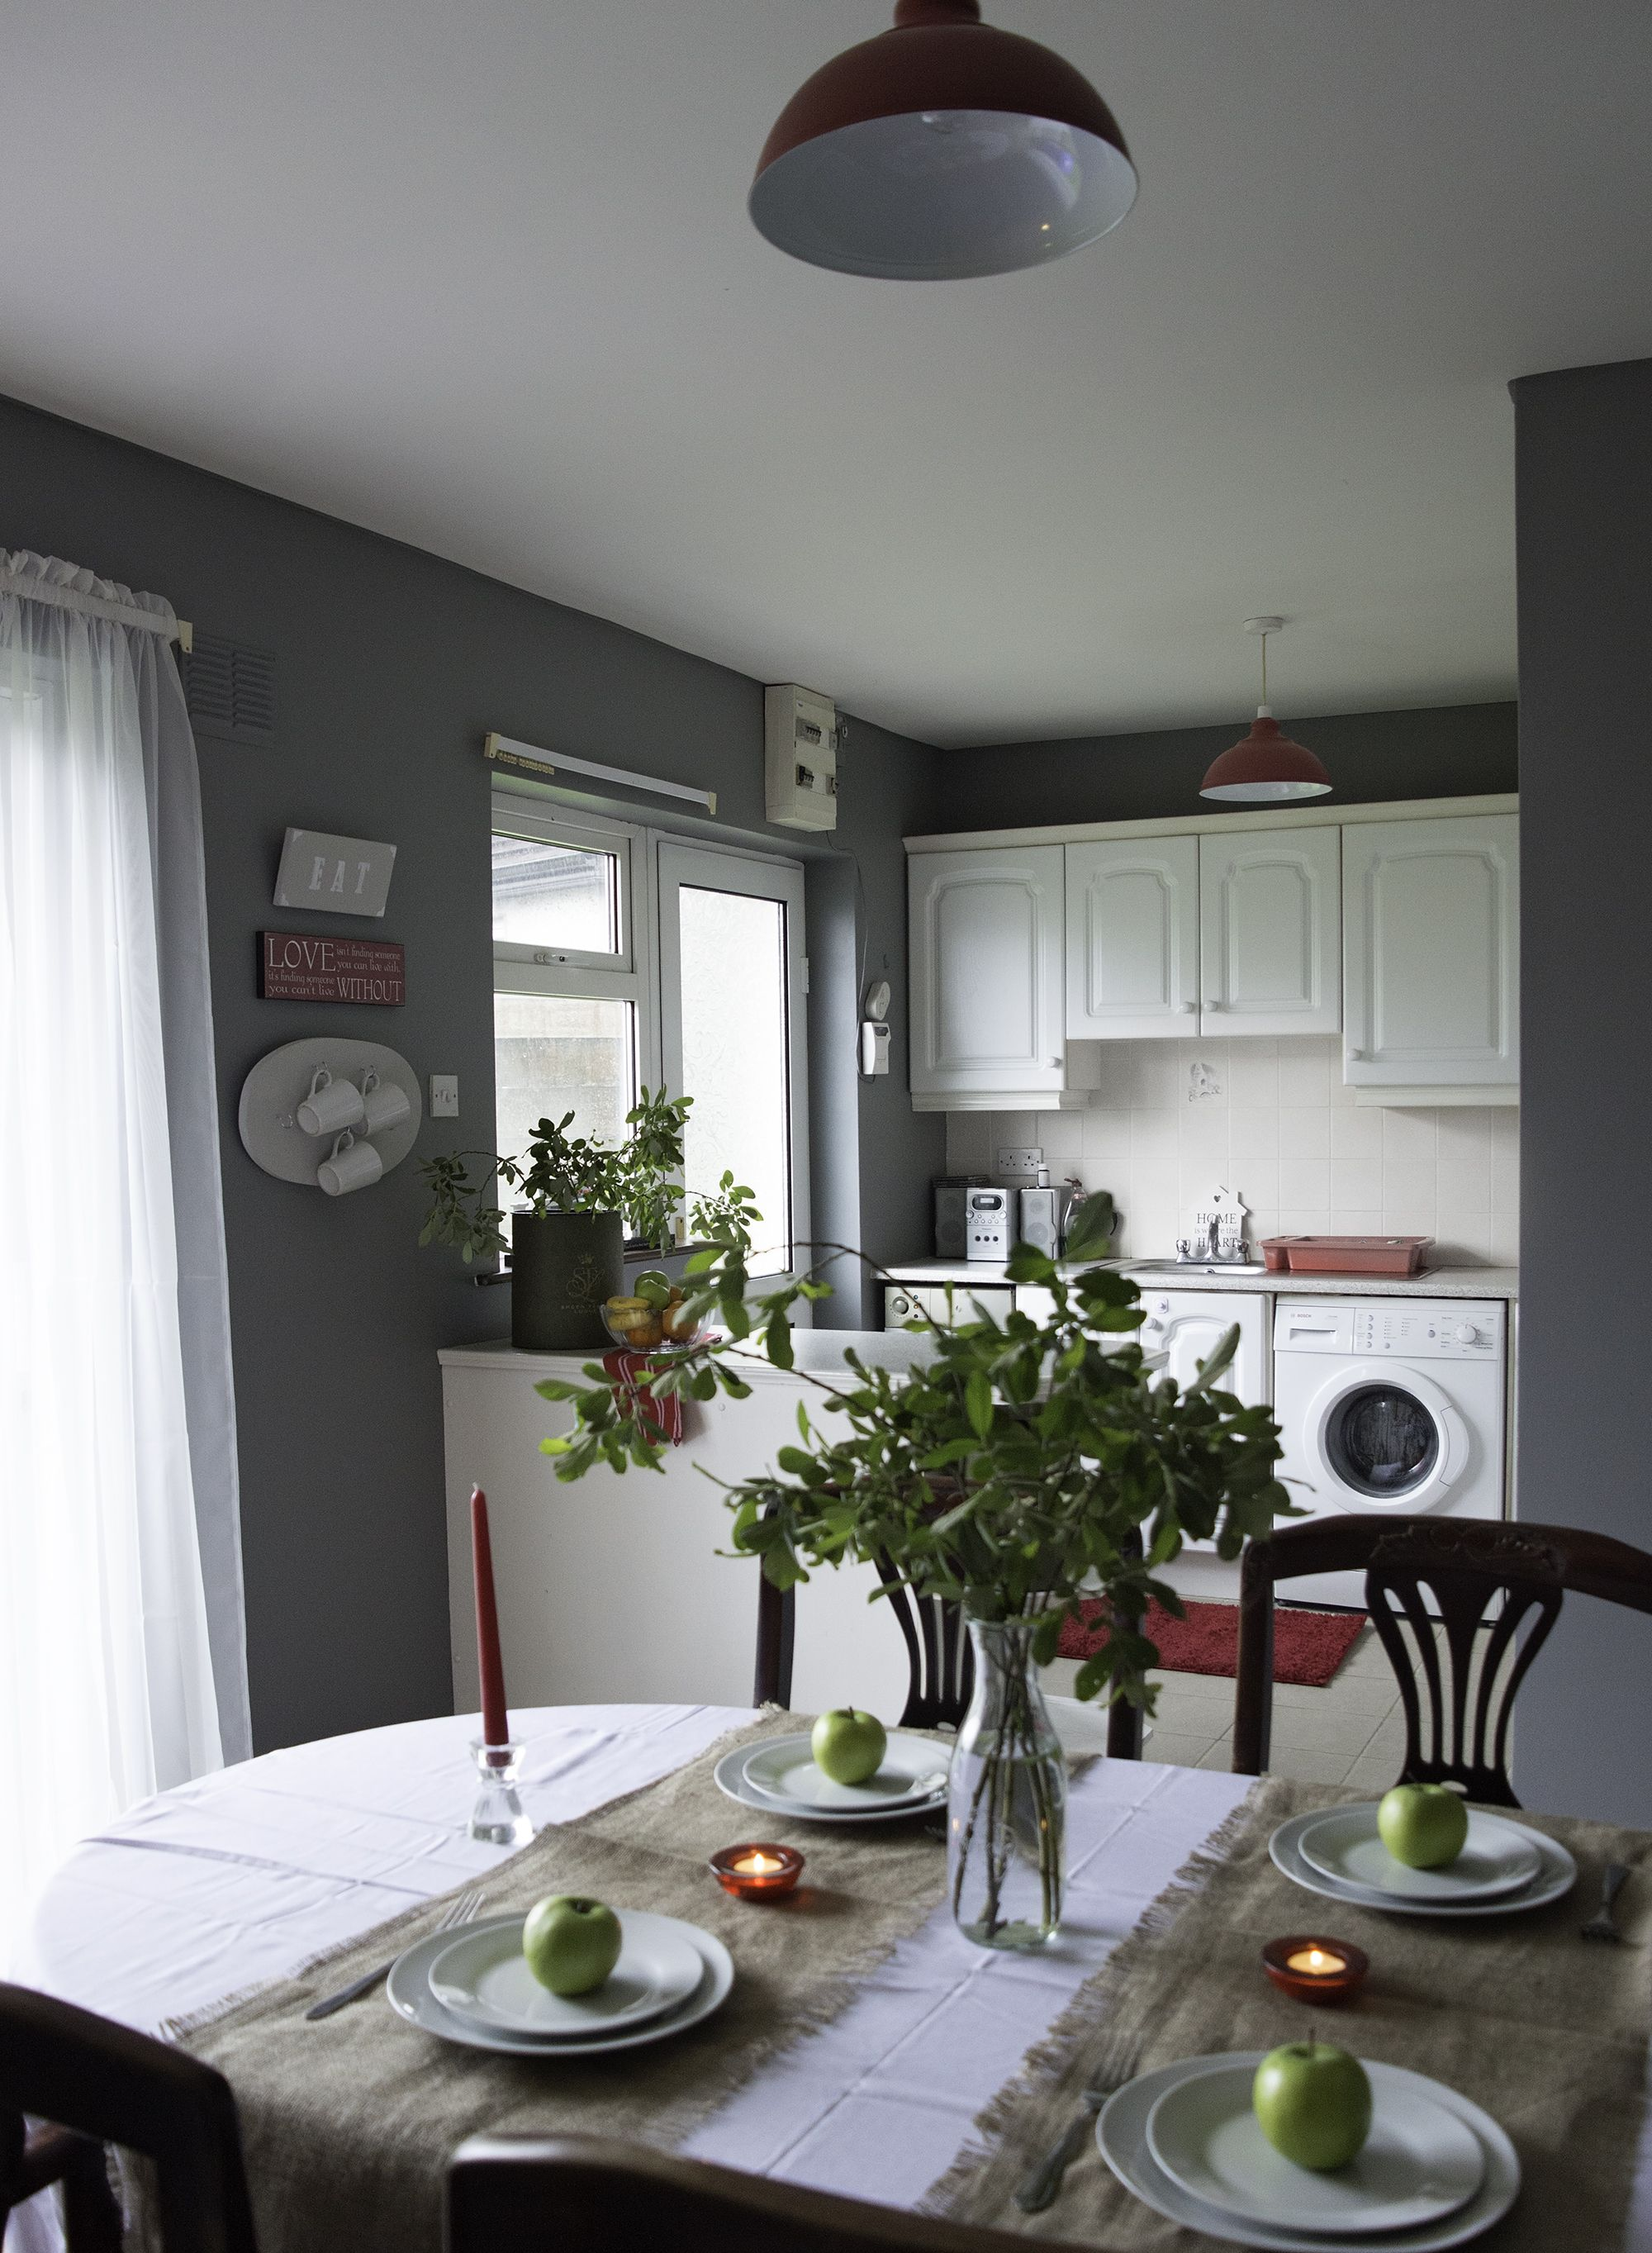 Rental kitchen before and after. It only costed 220 euro